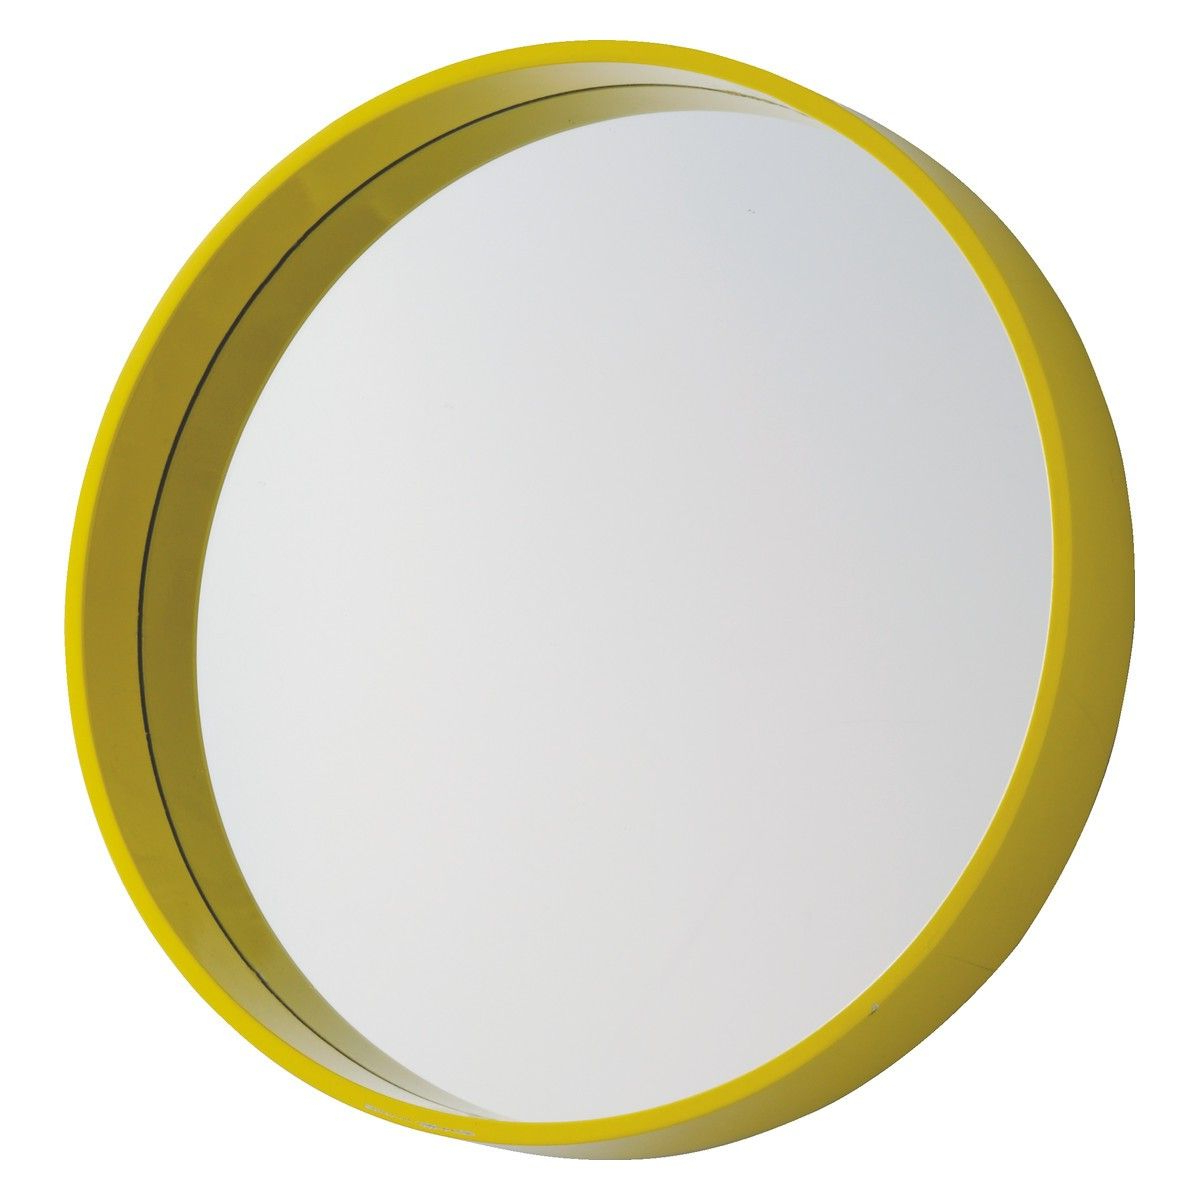 Aimee Yellow Round Wall Mirror D41Cm (View 3 of 20)